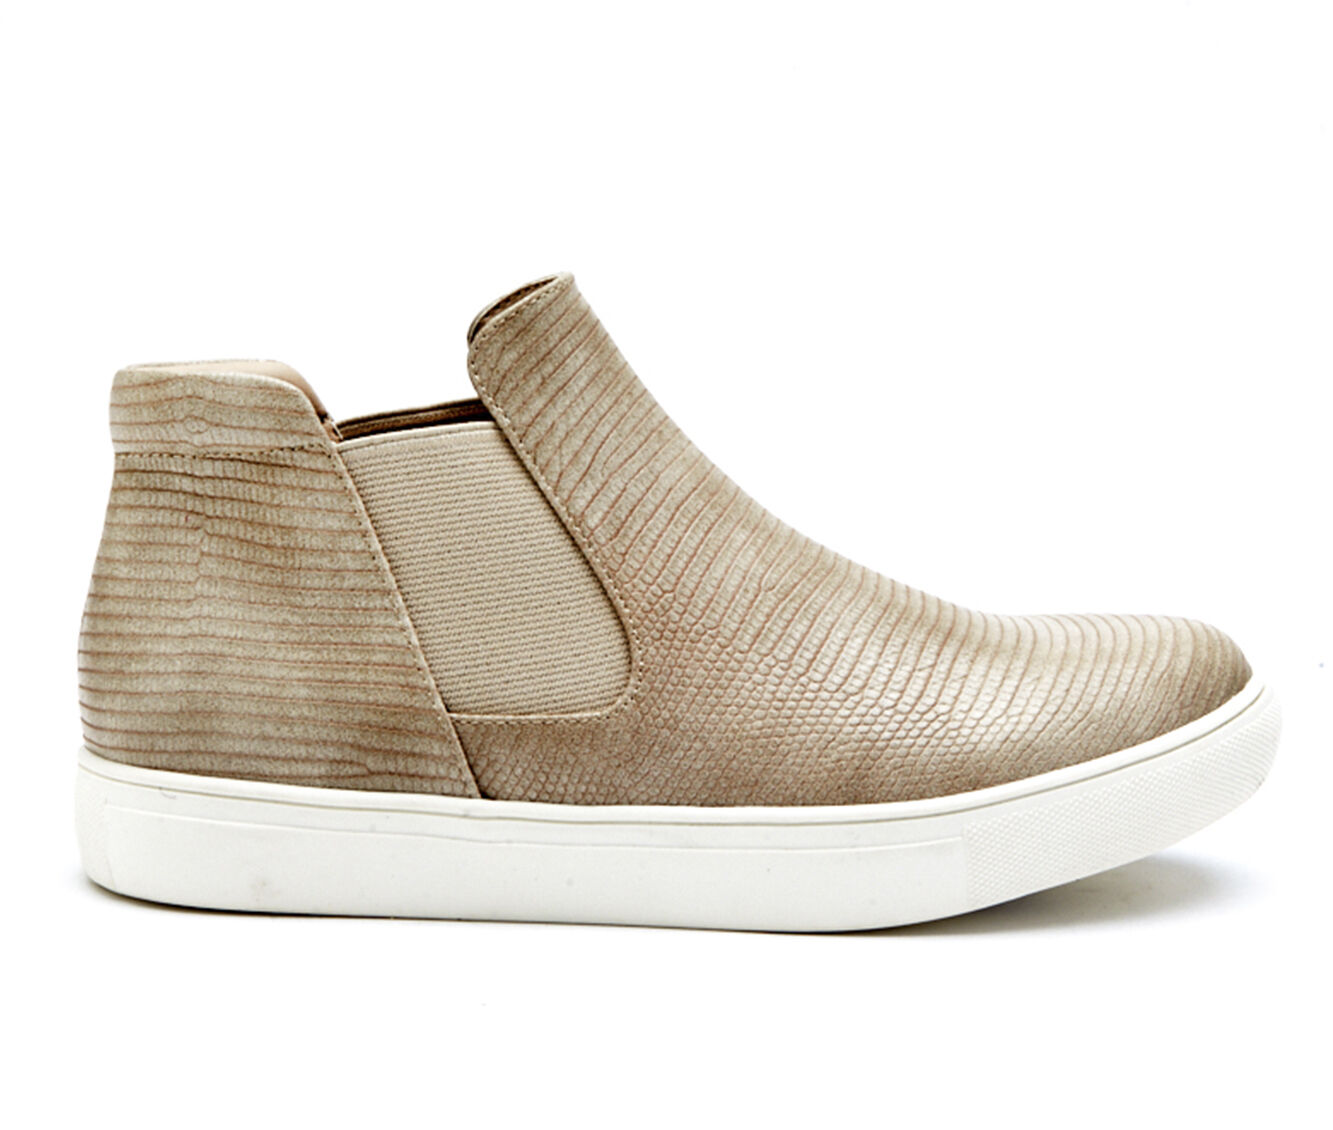 Classic-Fit Women's Coconuts Harlan Sneakers Taupe Lizard